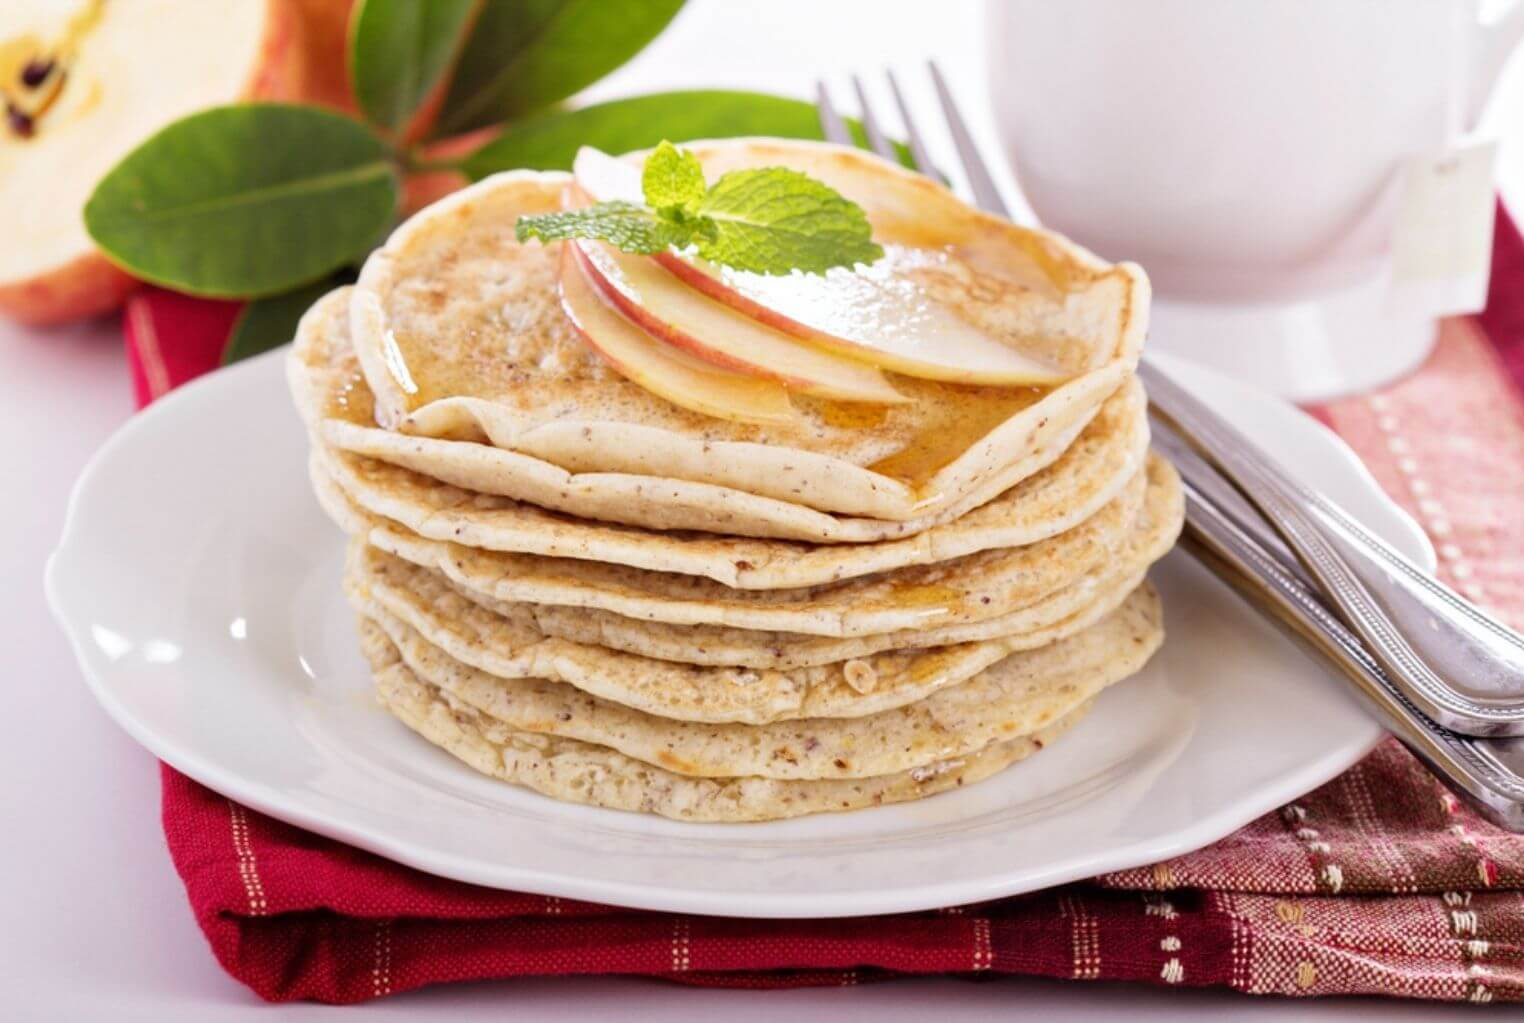 White plate with a stack of thin pancakes garnished with apple slices and mint.